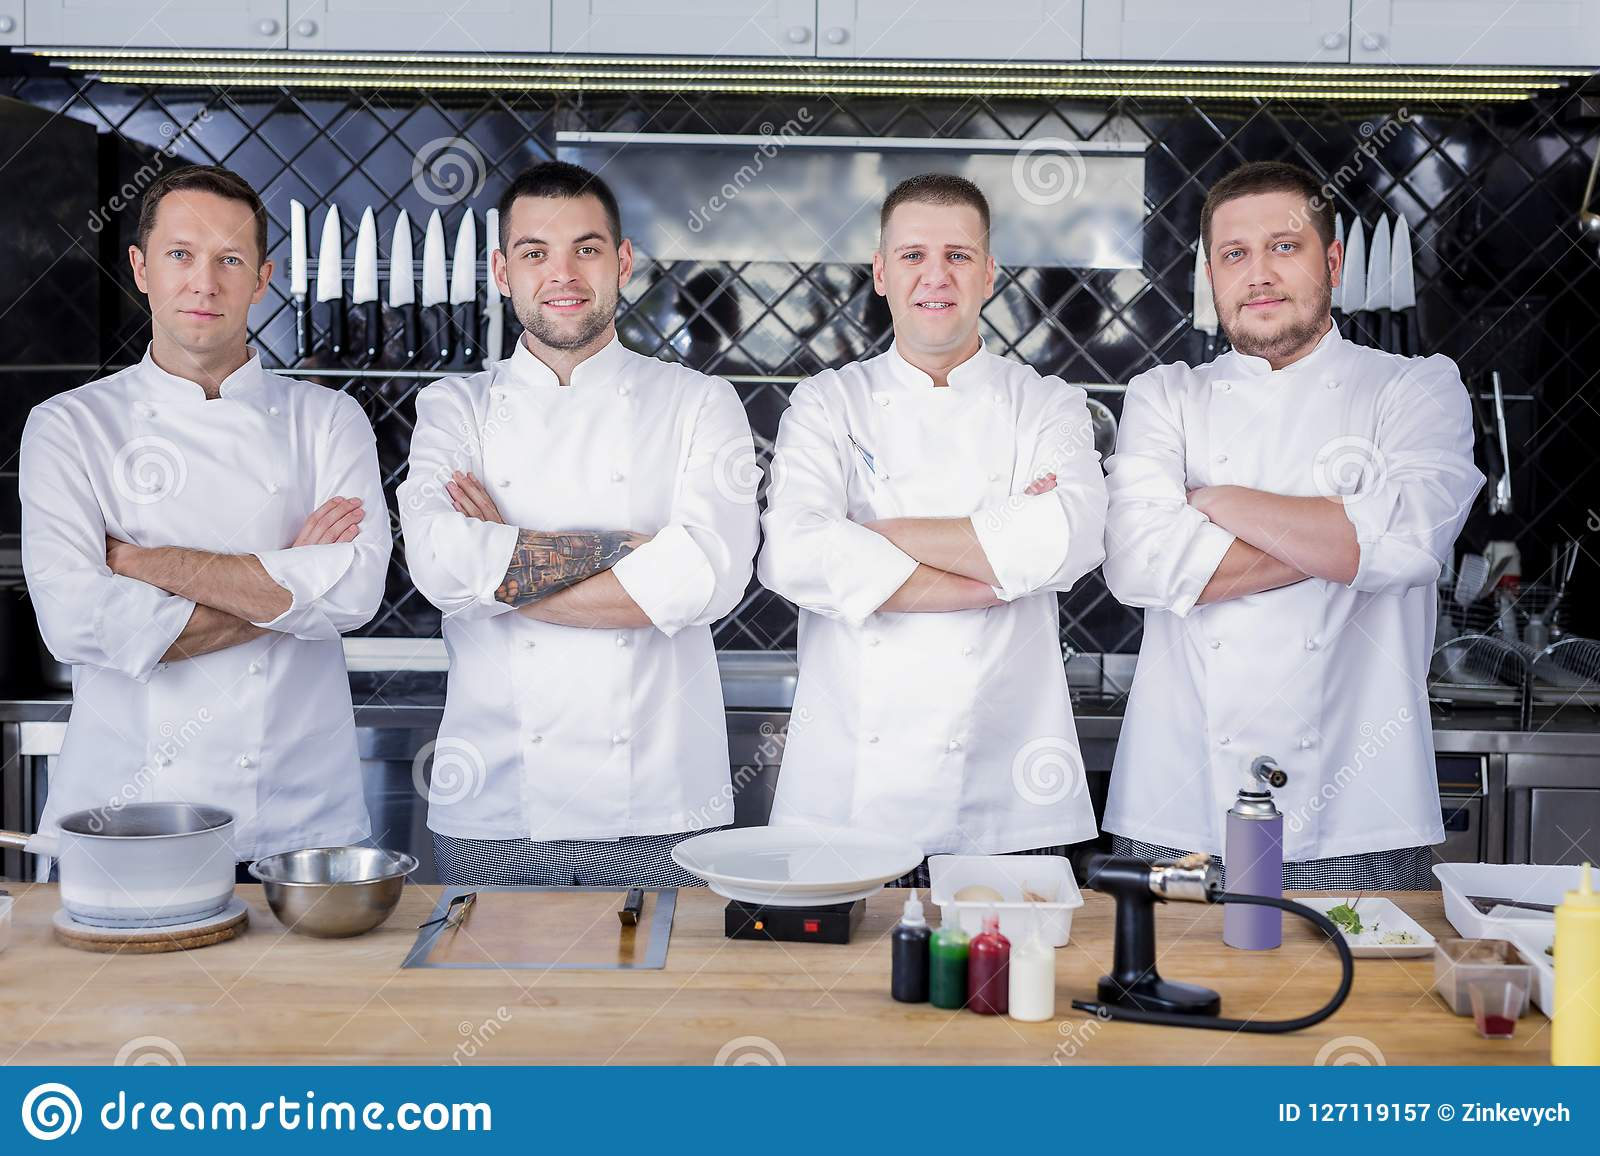 Great team of cooks standing in the middle of a kitchen